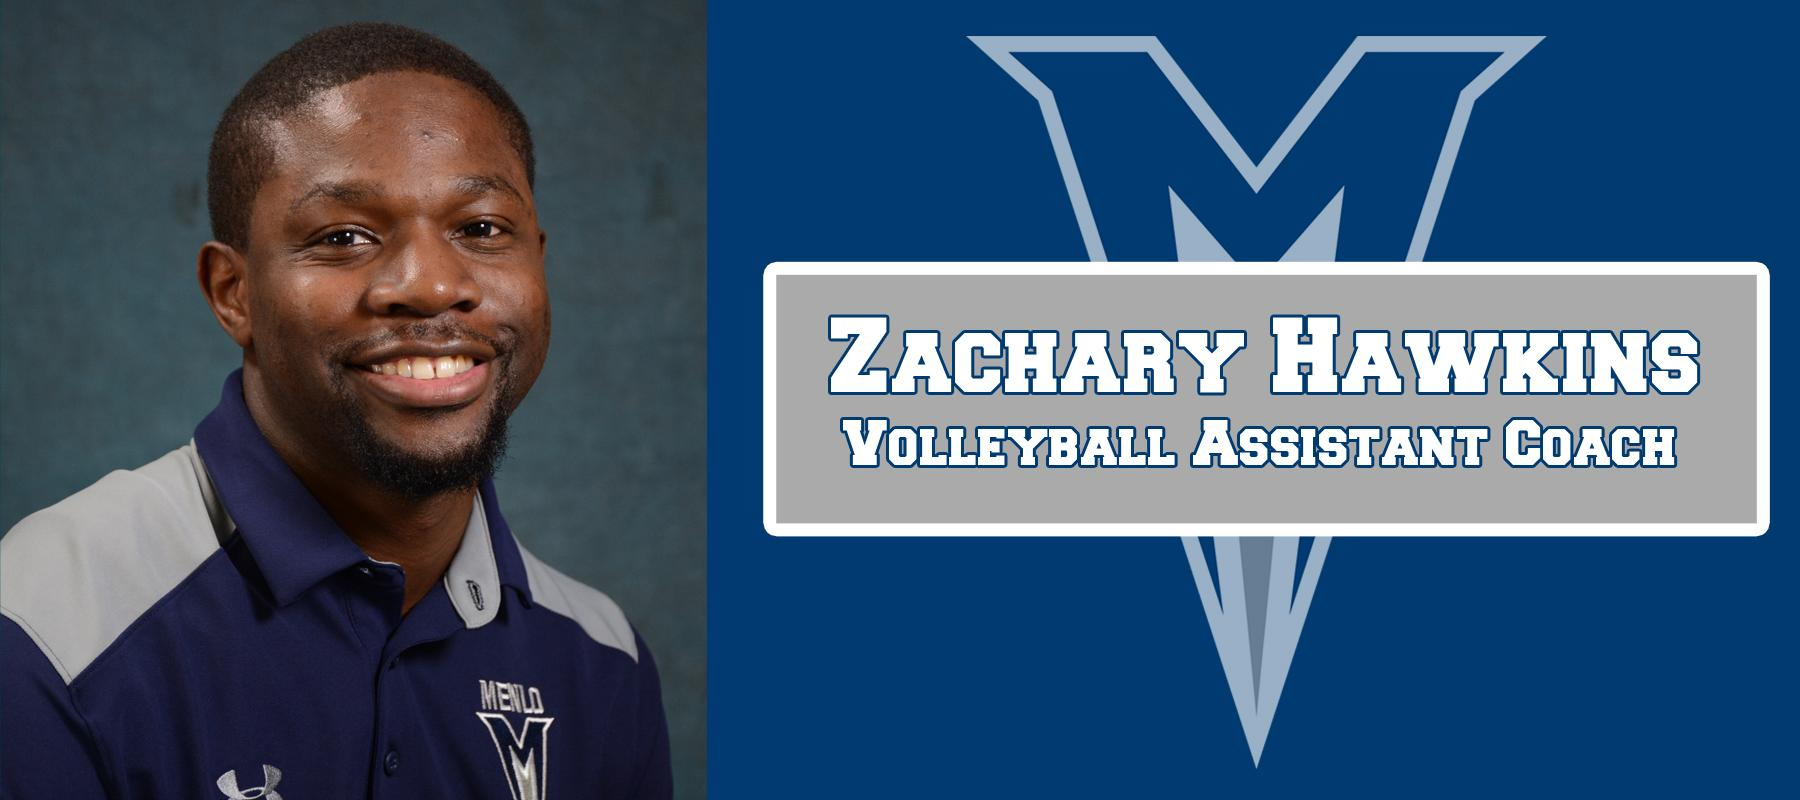 Zachary Hawkins named Volleyball Assistant Coach